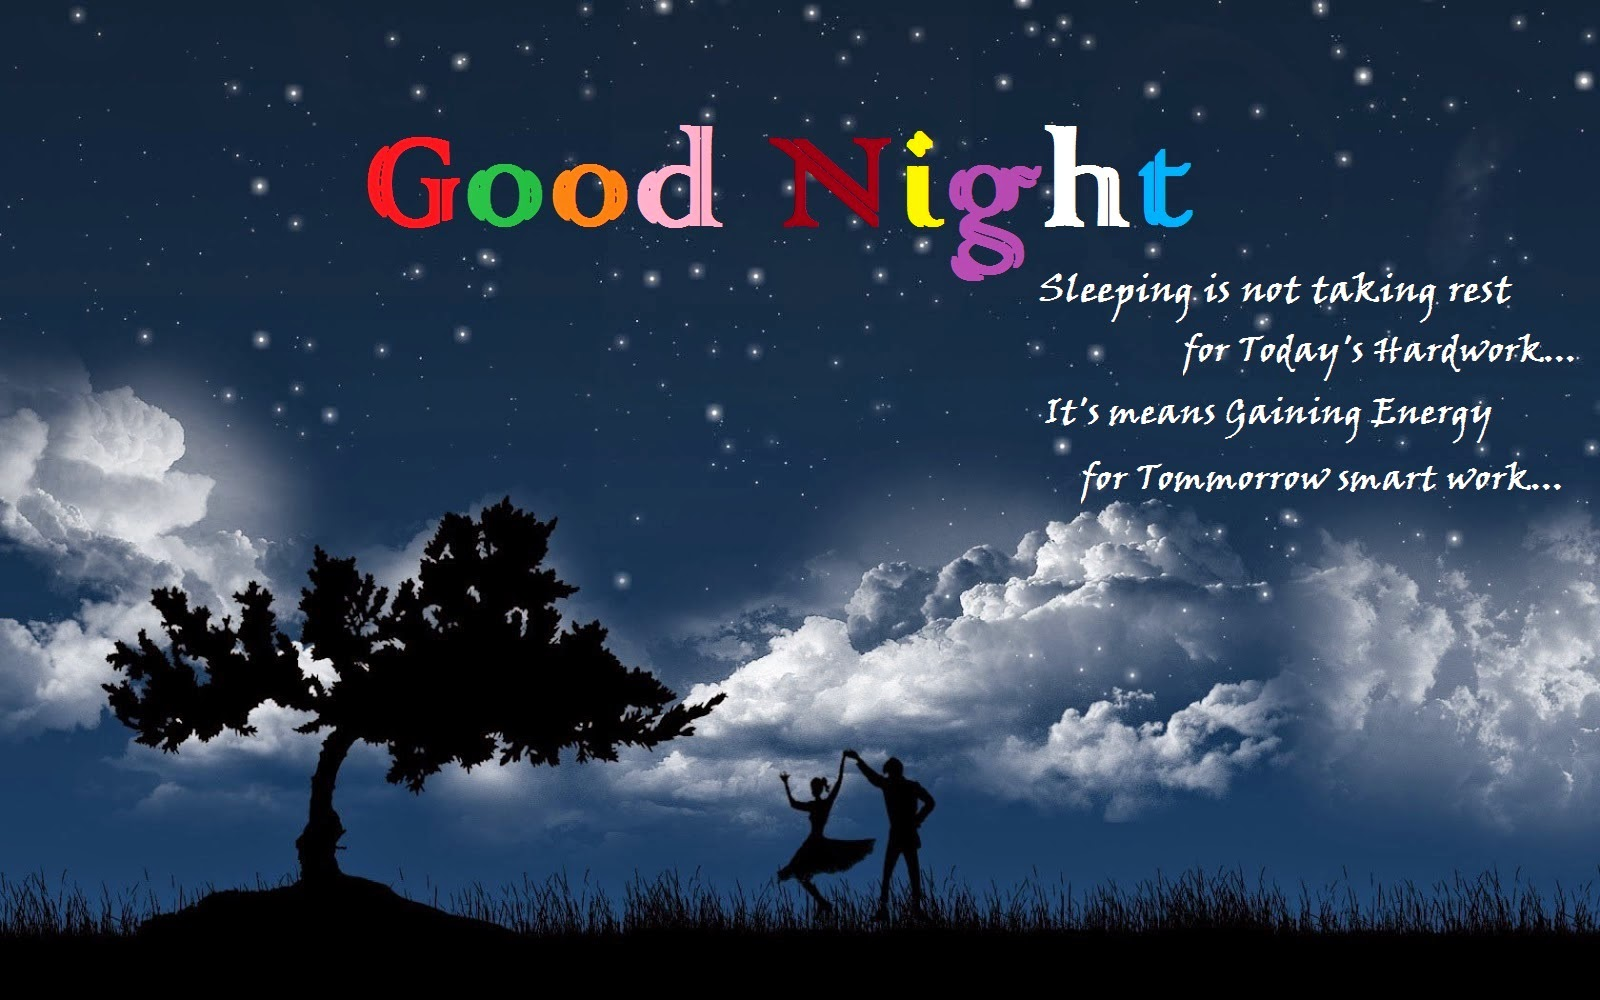 Wallpaper download good night - Good Night Wallpaper With Love Quote